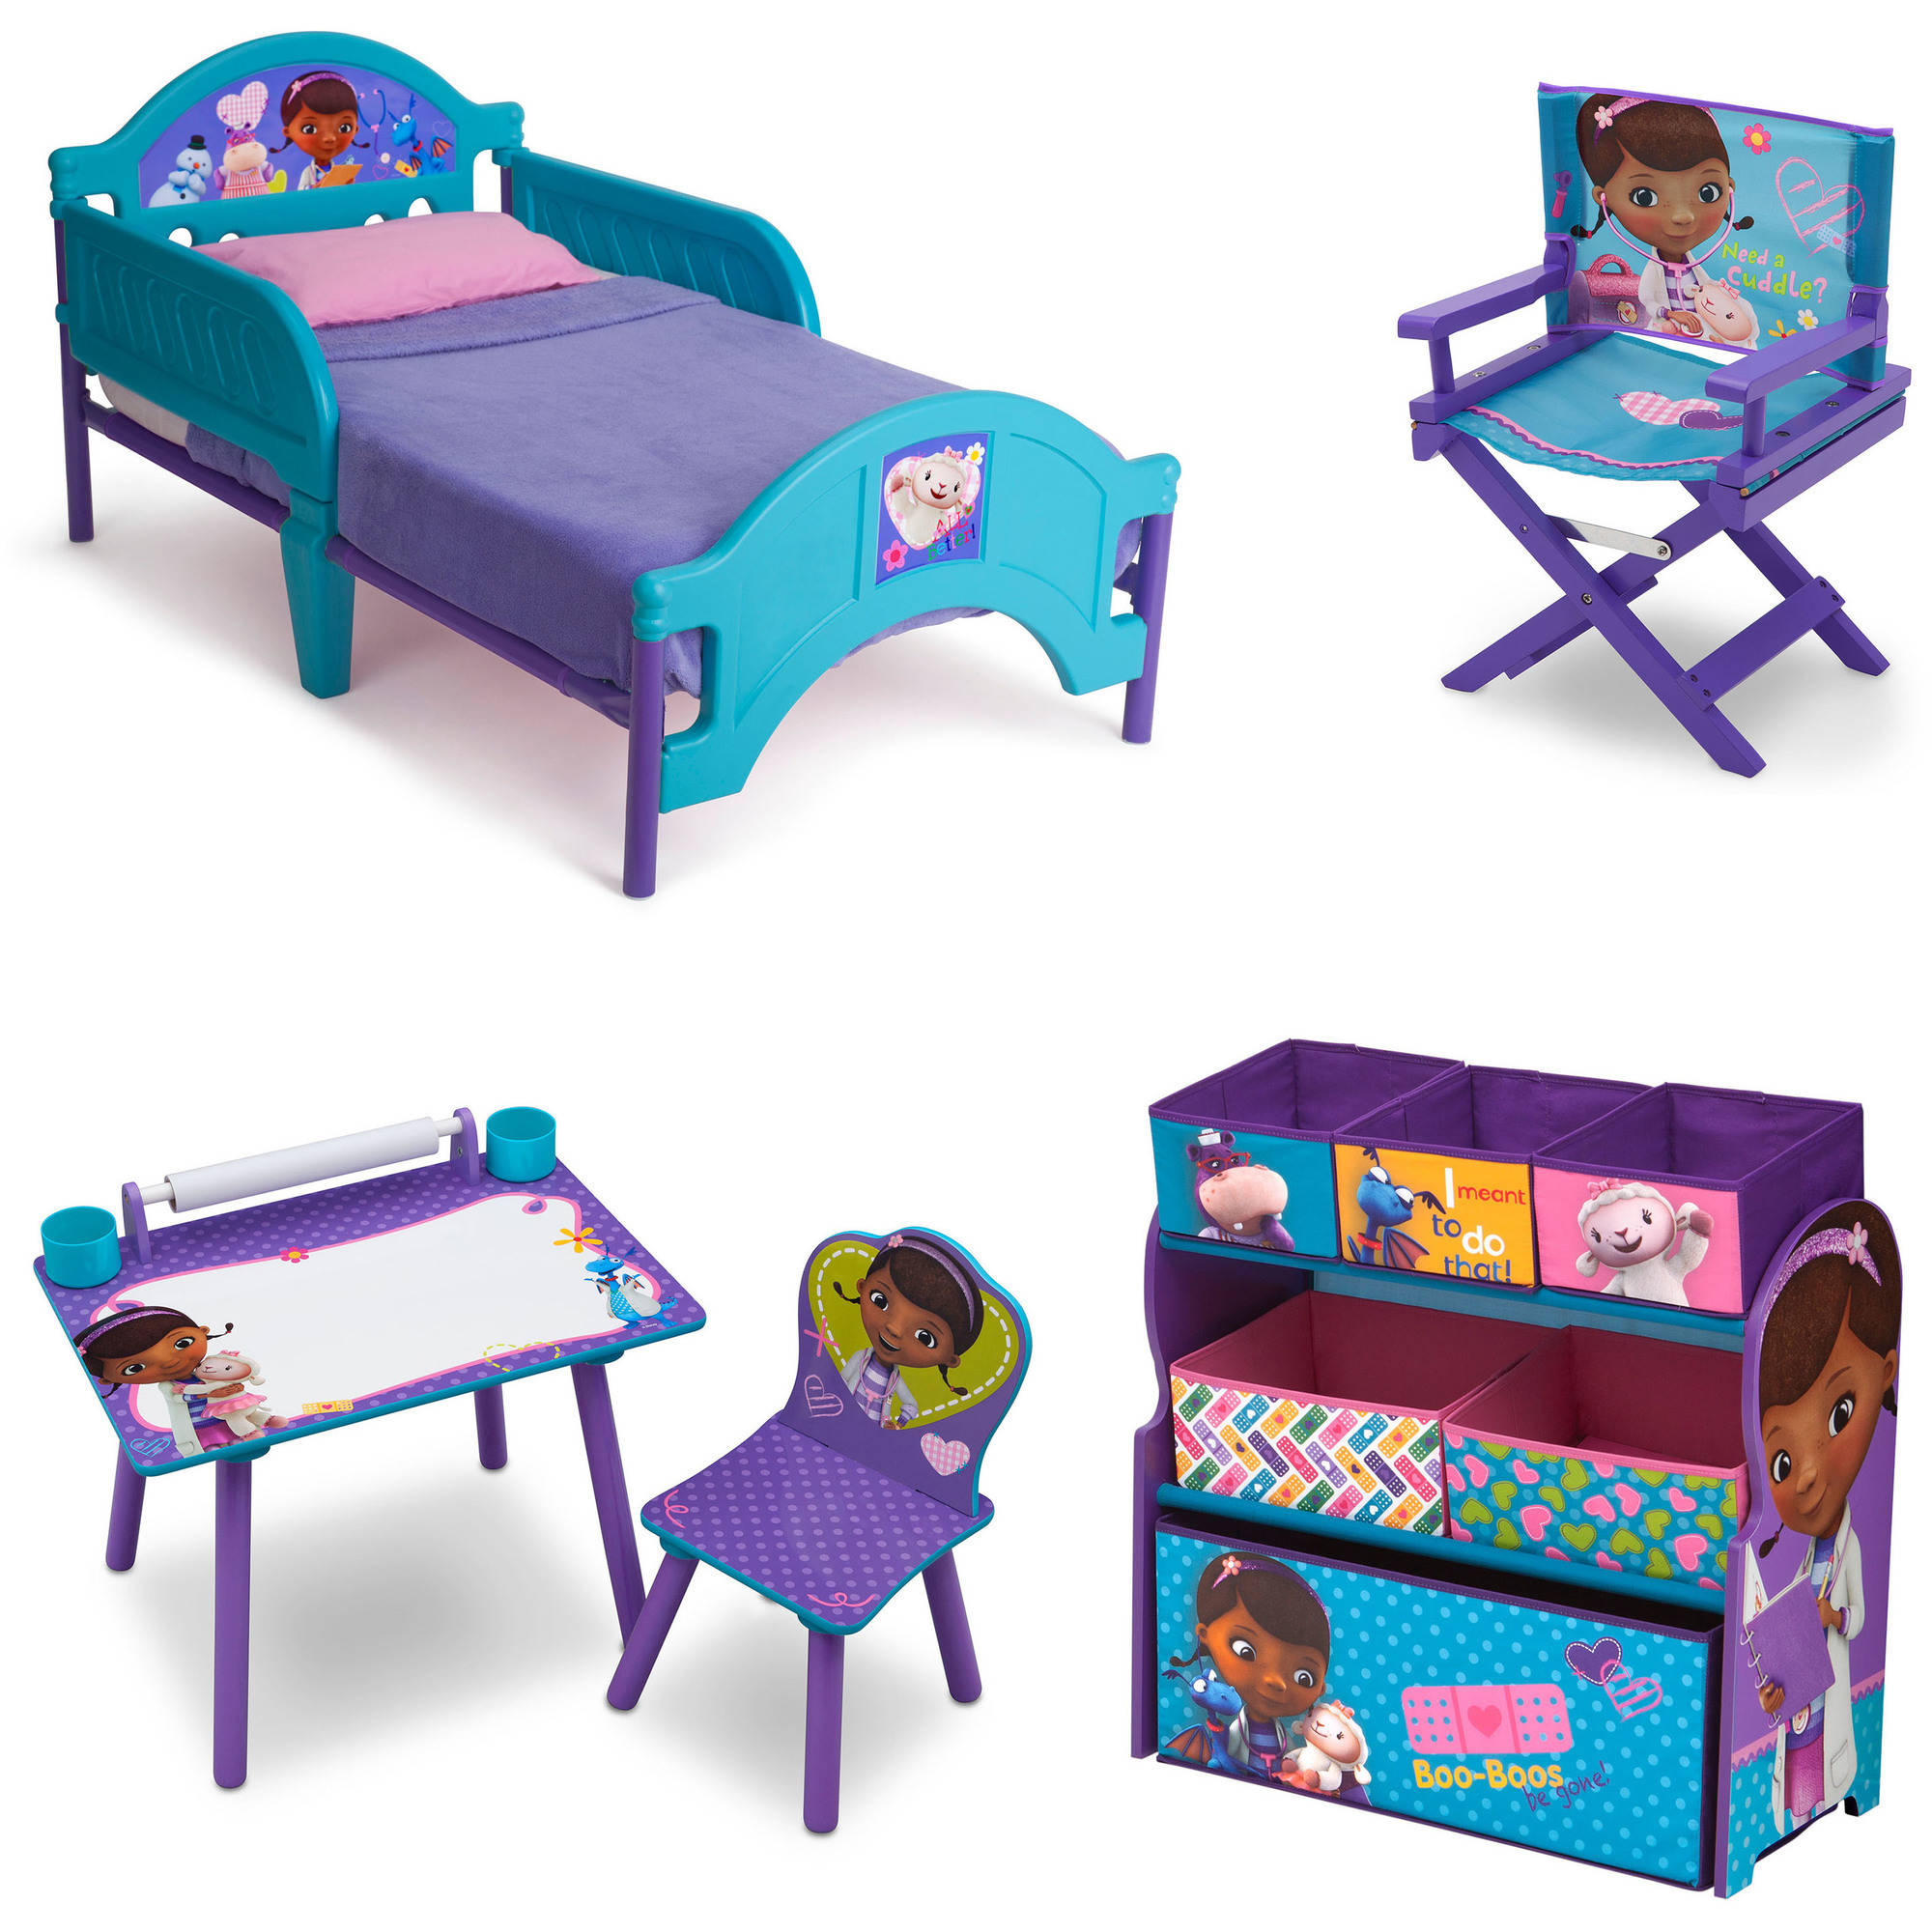 Disney Jr. Doc McStuffins Room-in-a-Box with Bonus Chair